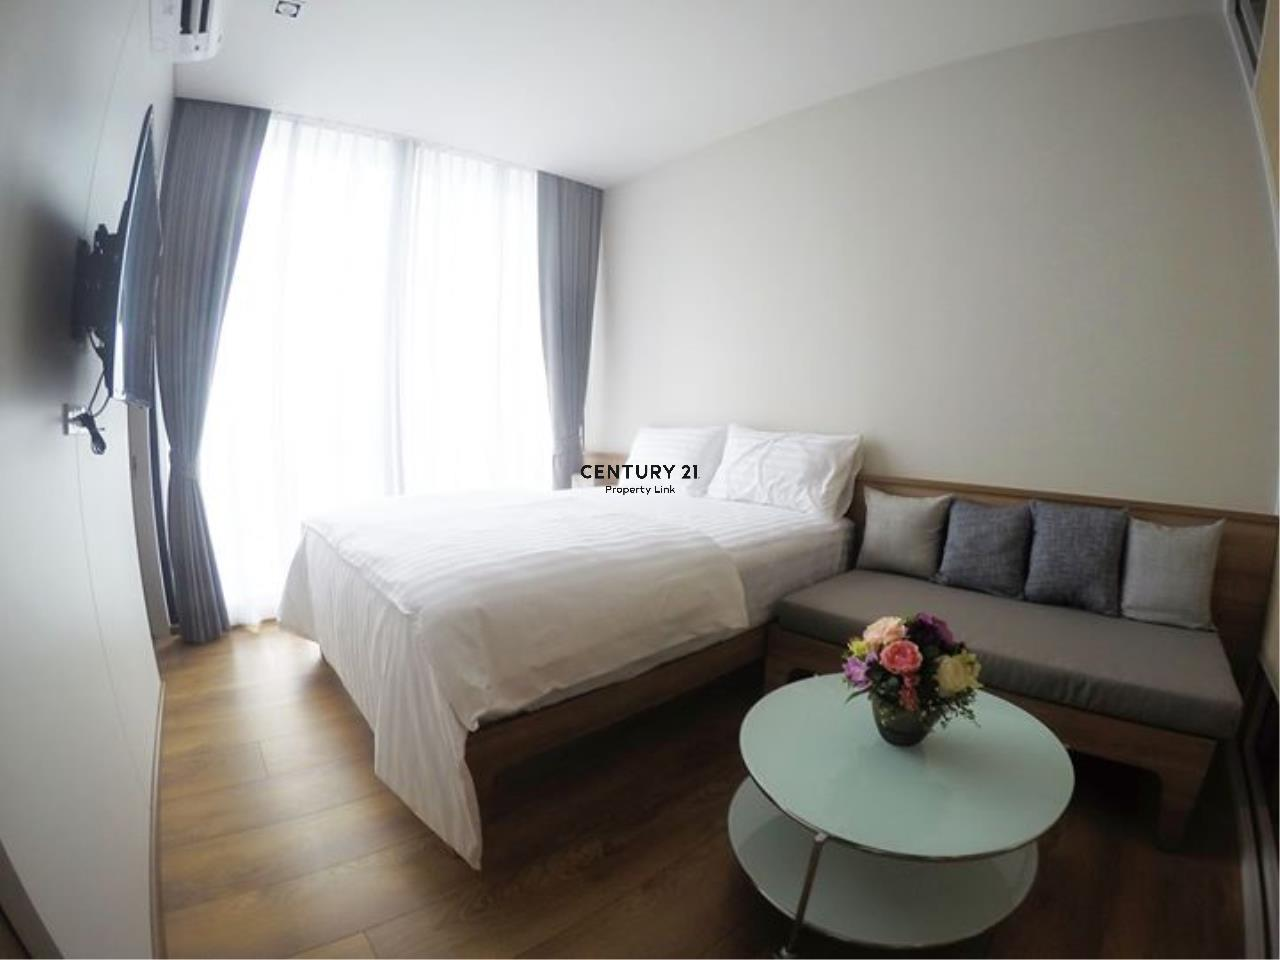 Century21 Property Link Agency's 39-CC-61513 Park 24 Room For Sale/ Rent 1 Bedroom Near BTS Phrom Phong Sale price 7.55MB./ 28,000THB/ month 1